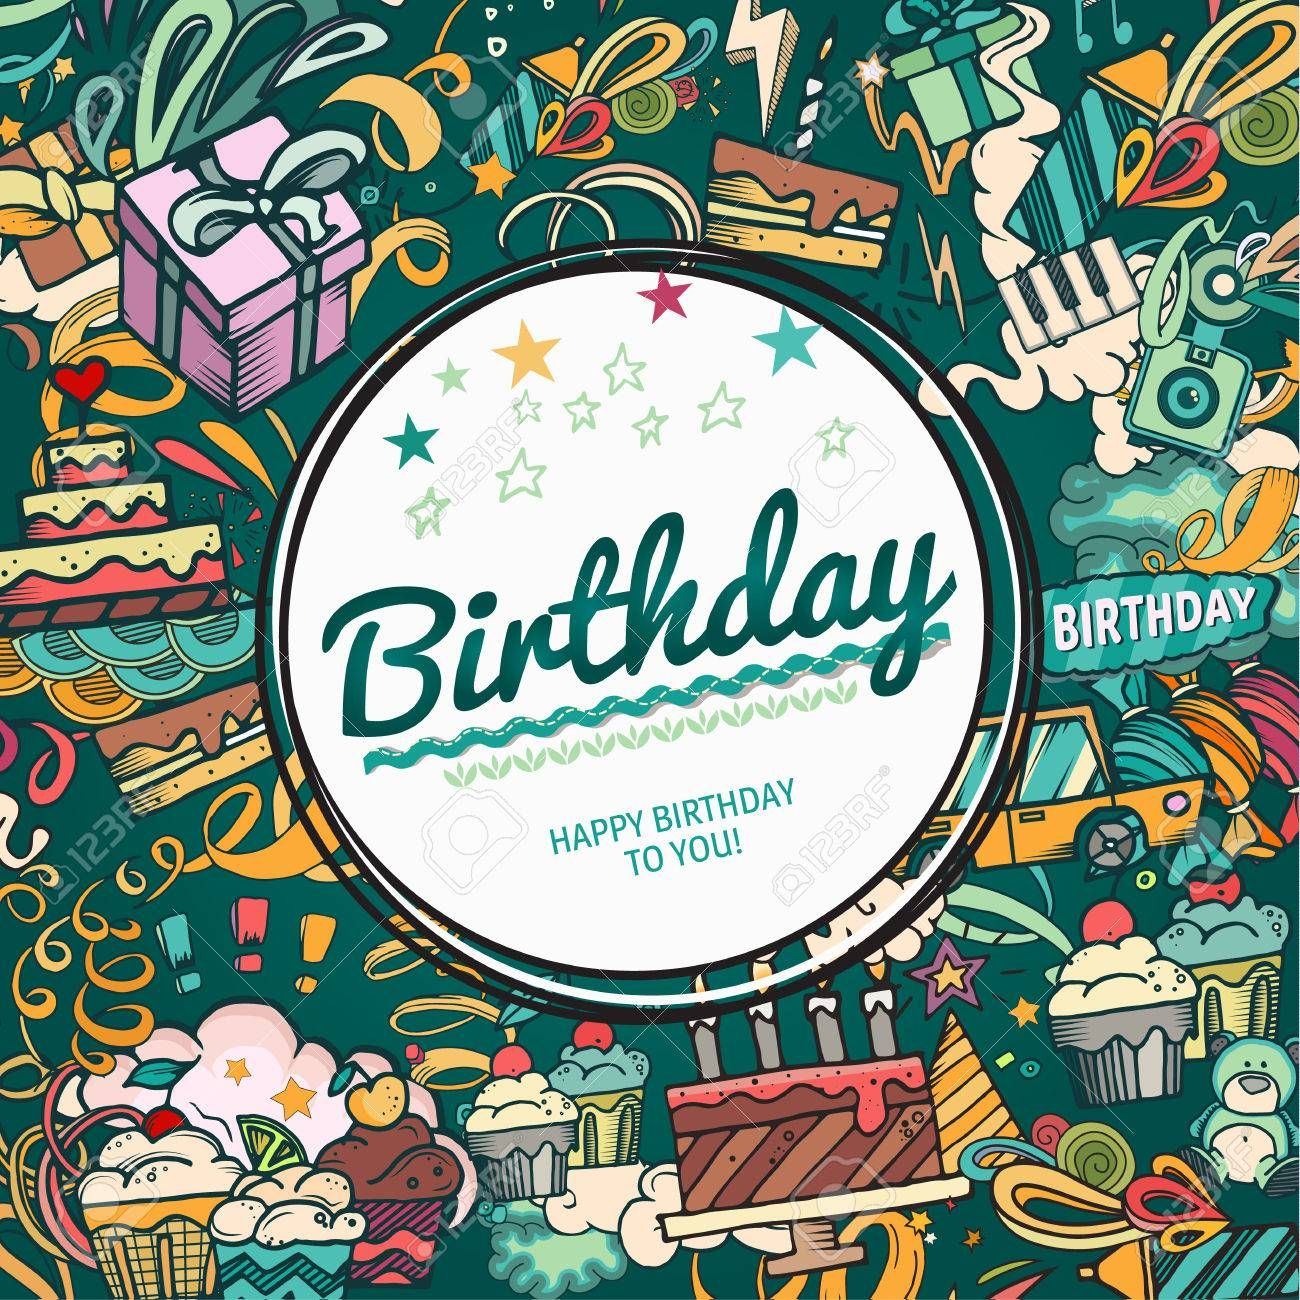 The Surprising Birthday Background Collage Photo Frame Card Album Template For Birthday Photo Frame Cards Birthday Photo Frame Holiday Photo Cards Template